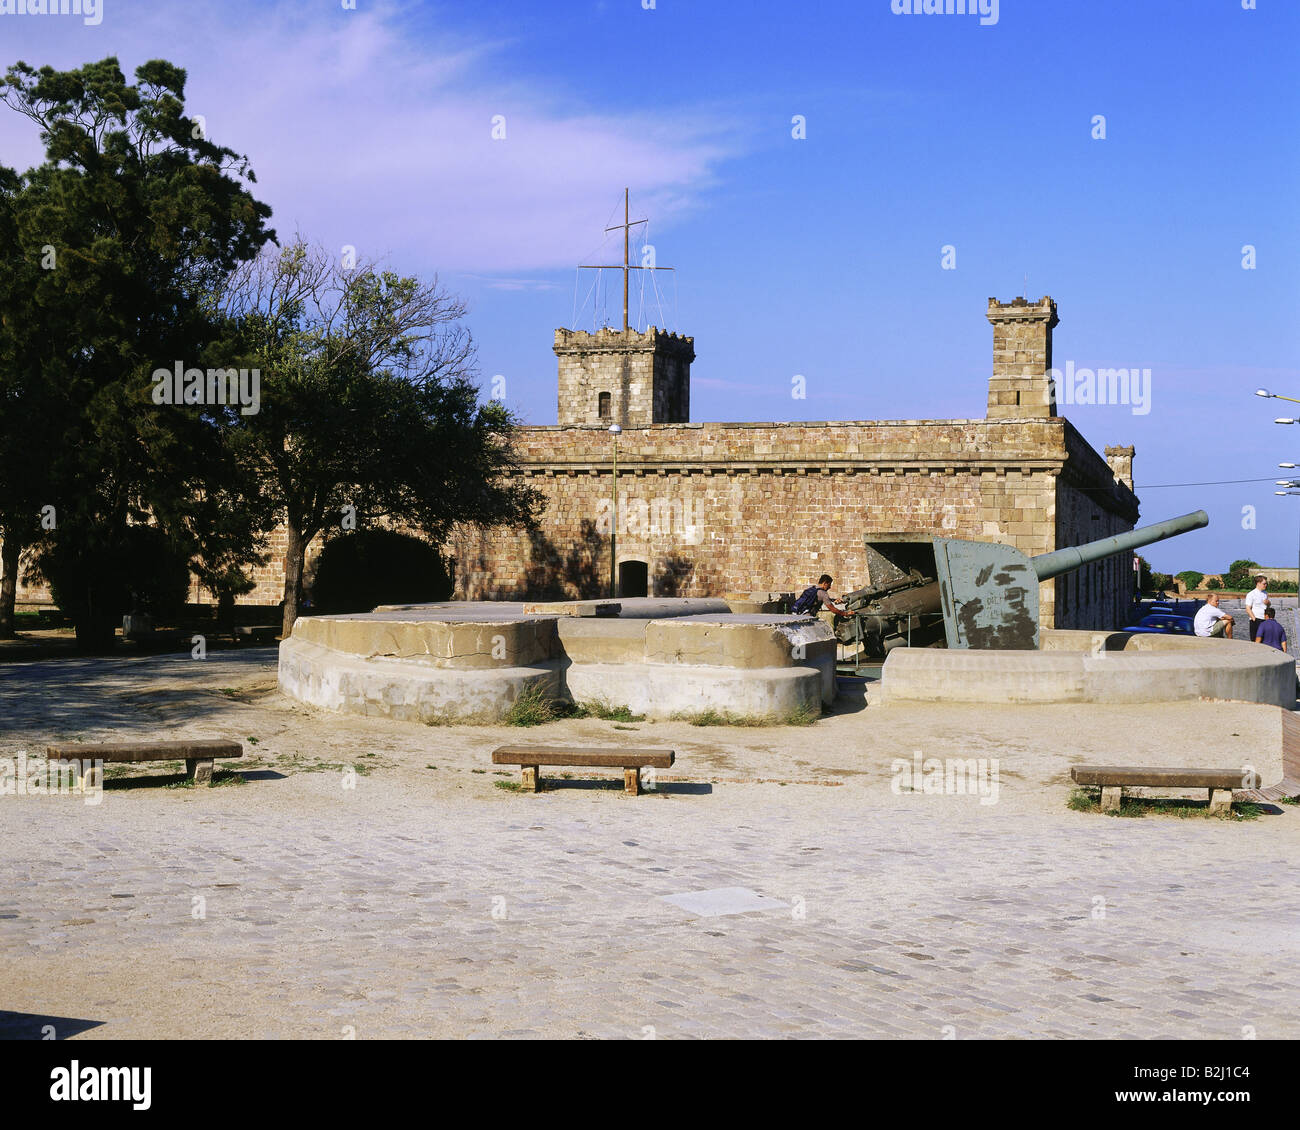 geography / travel, Spain, Barcelona, building, architecture, Castell de Montjuic, Catalonia, castle, fortress, - Stock Image